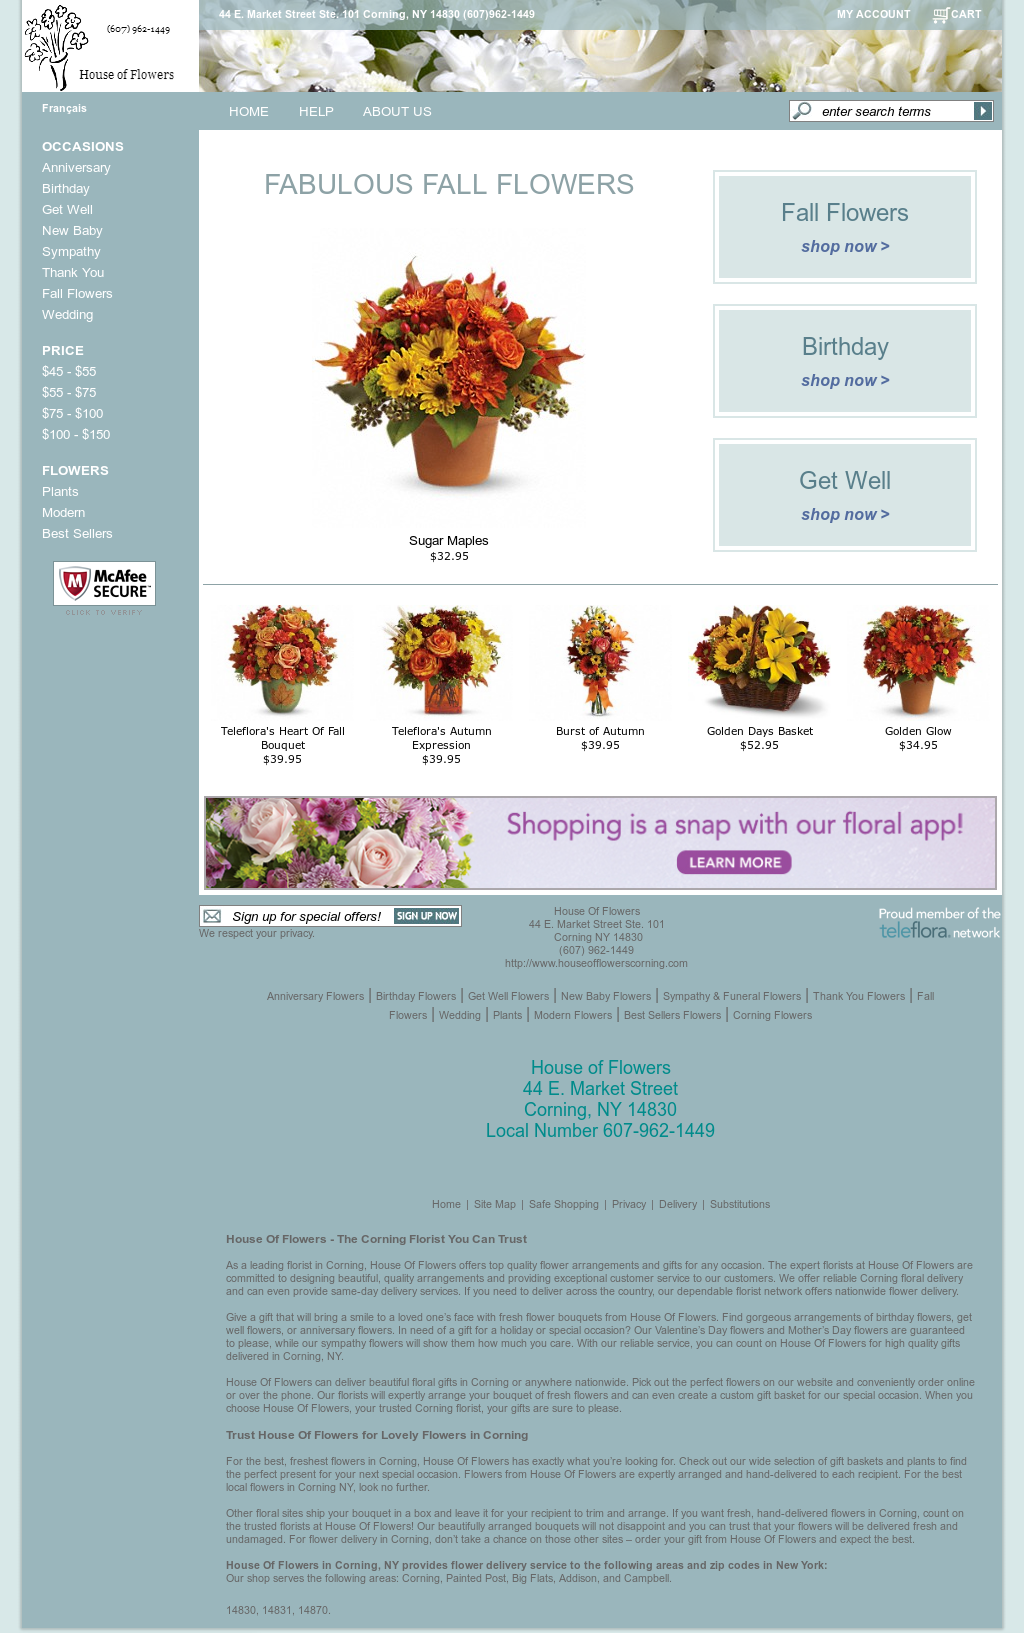 Houseofflowerscorning Competitors, Revenue and Employees - Owler Company Profile